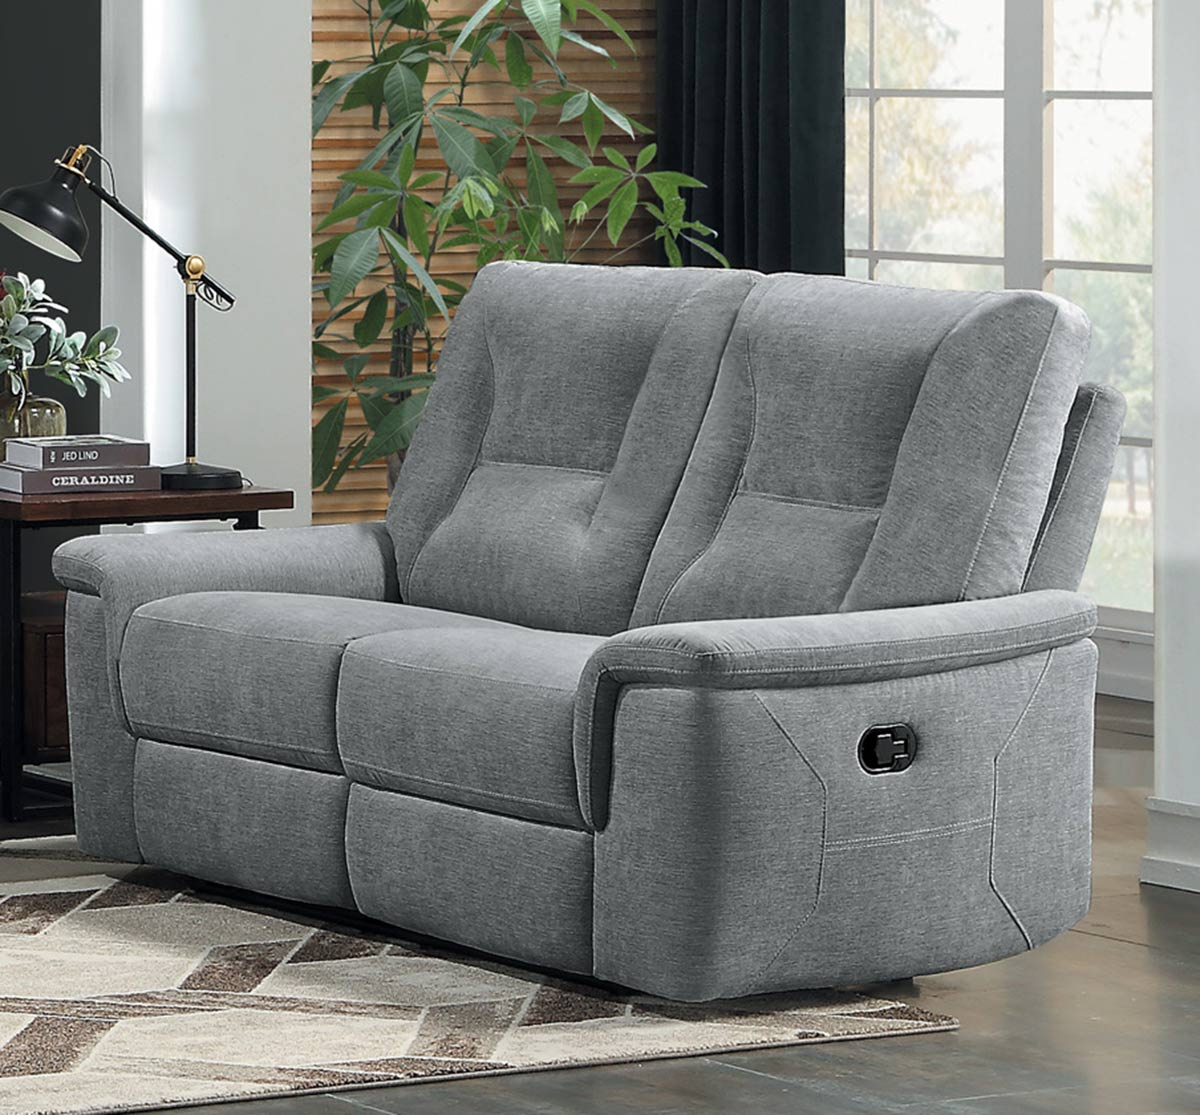 Homelegance Edelweiss Double Reclining Love Seat - Metal gray